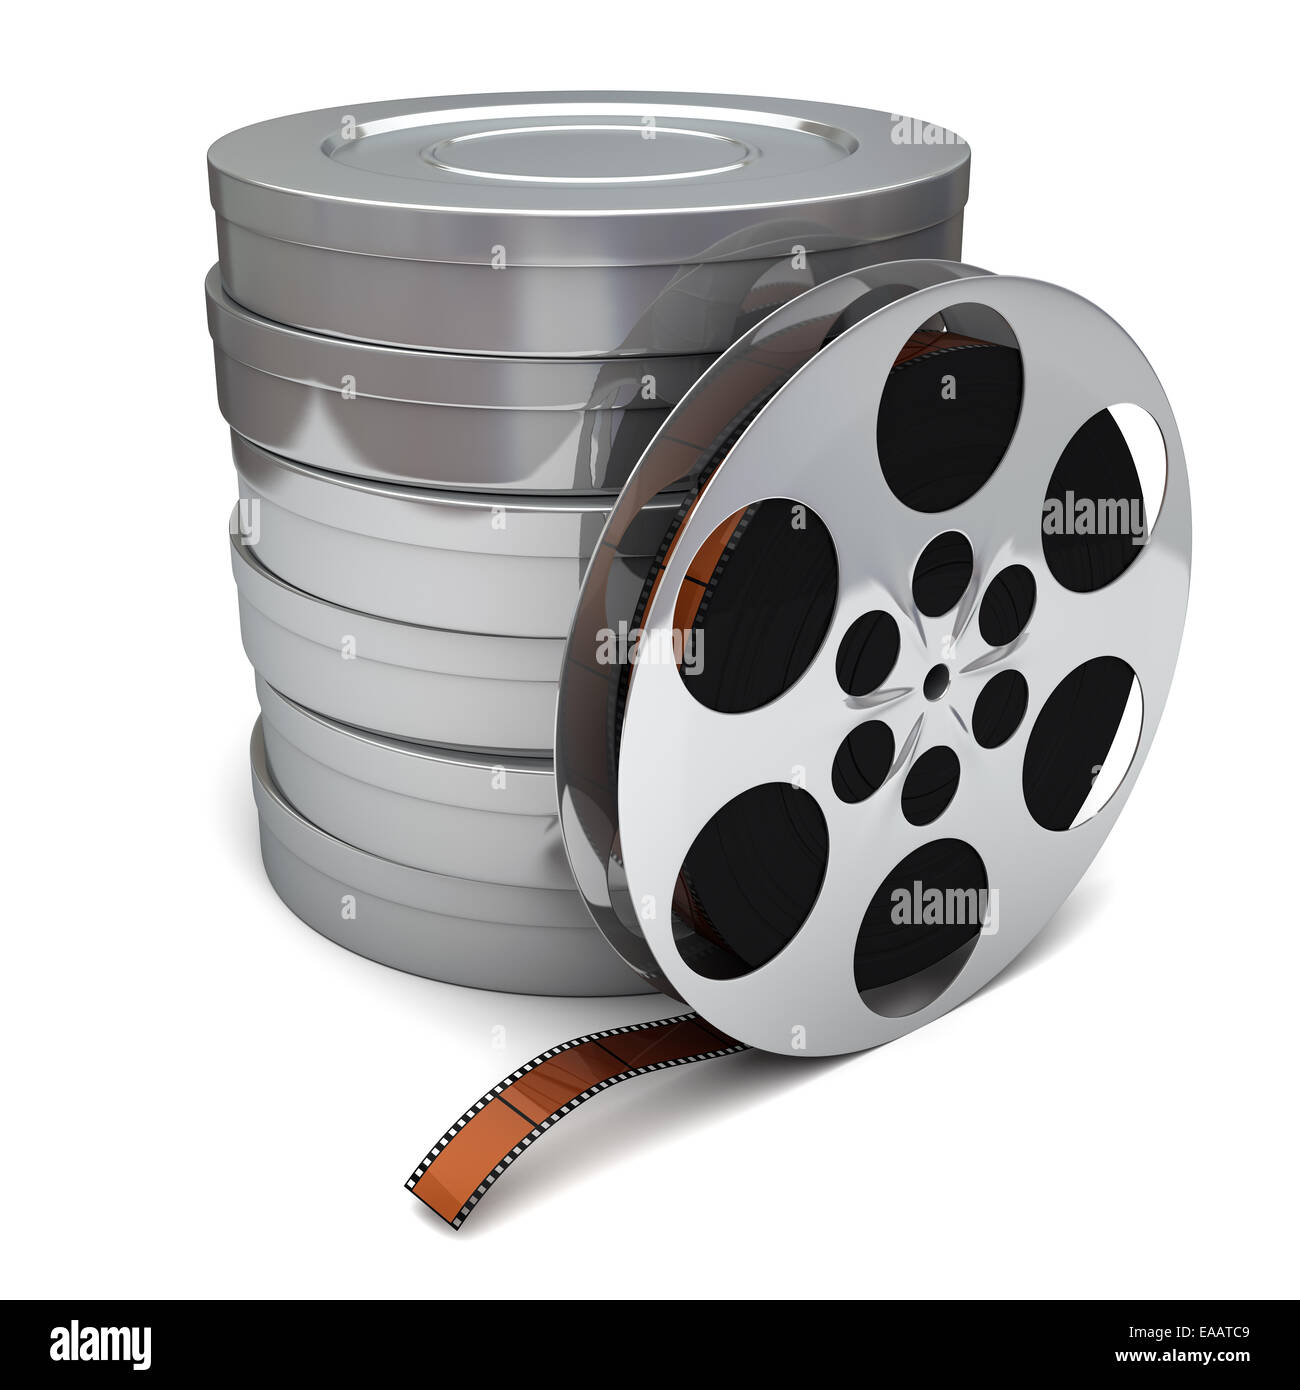 Film reel and canisters on a white background - Stock Image